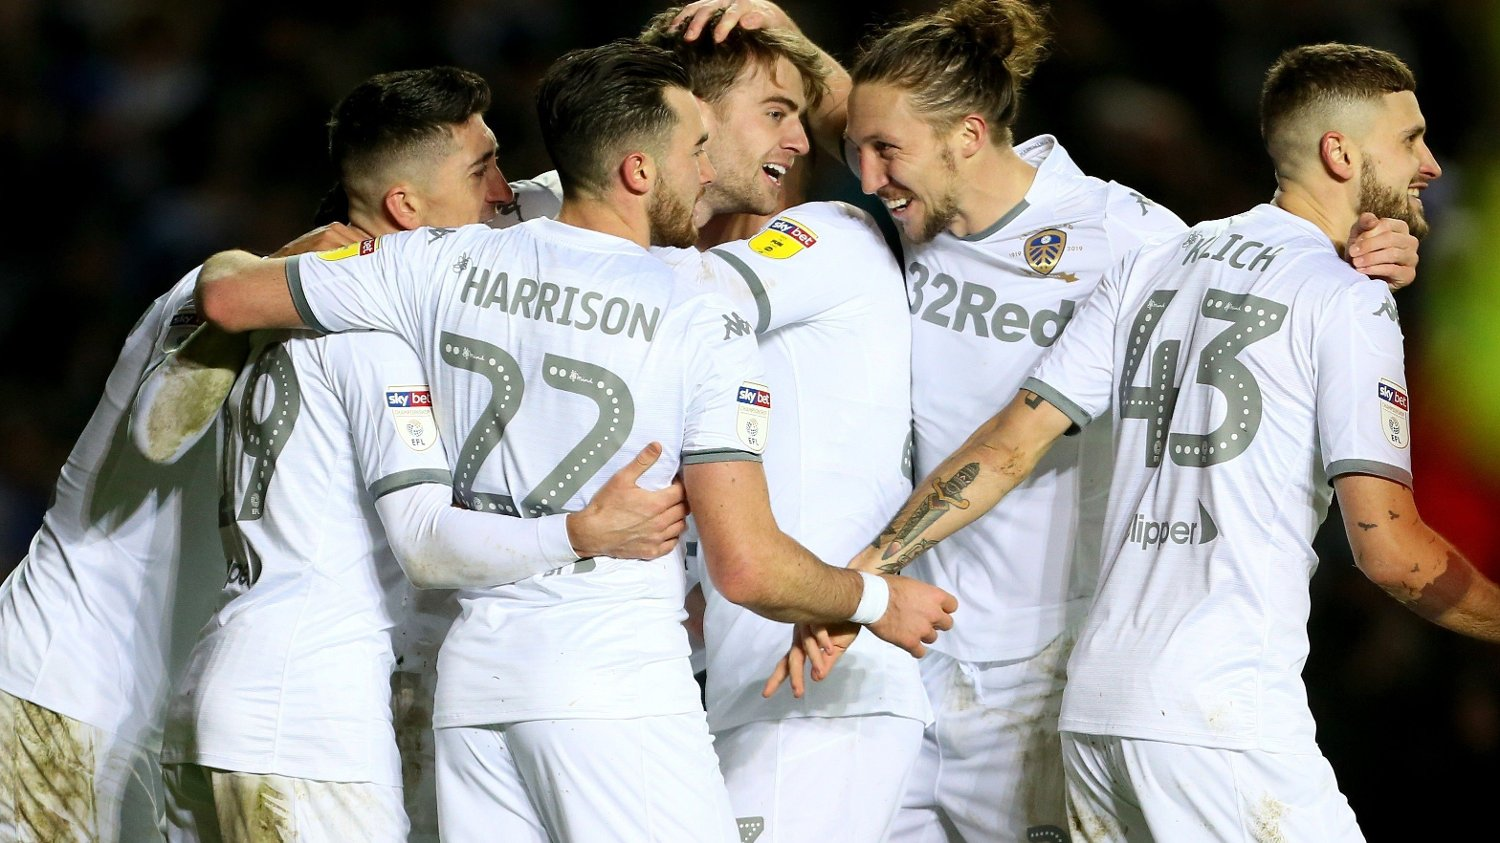 Leeds United's Patrick Bamford celebrates scoring his side's third goal of the game during the Sky Bet Championship match at Elland Road, Leeds.